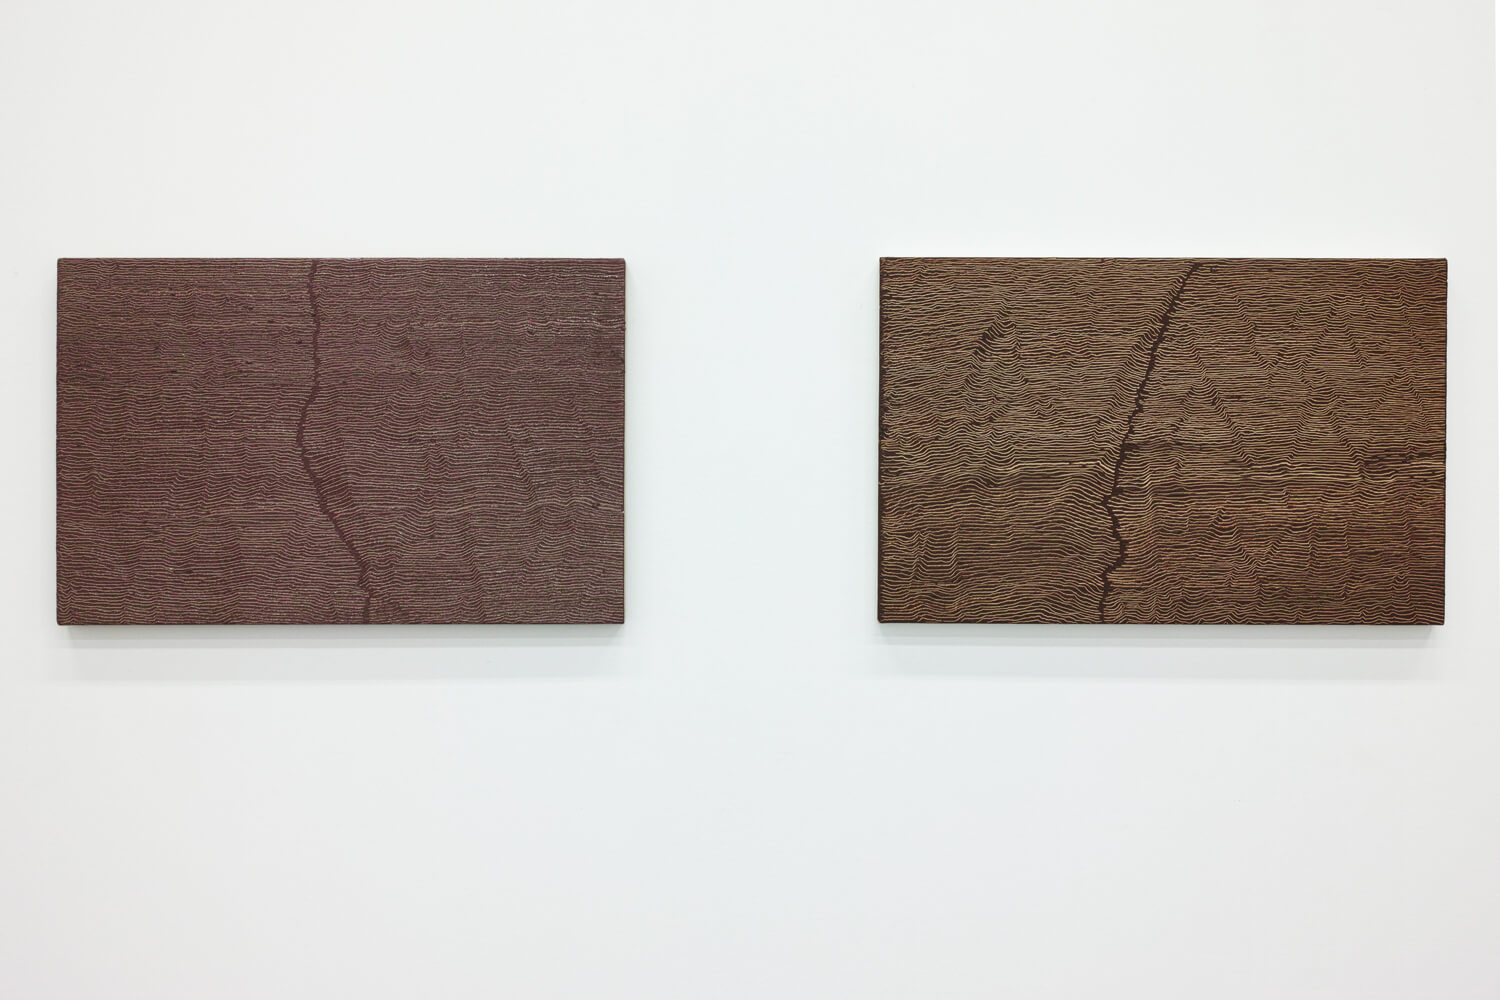 'Fissure 10'  (left) & 'Fissure 9' (right)<br>Oil and Amber on canvas over panel, 33.7 x 53.4 cm, 2001 each